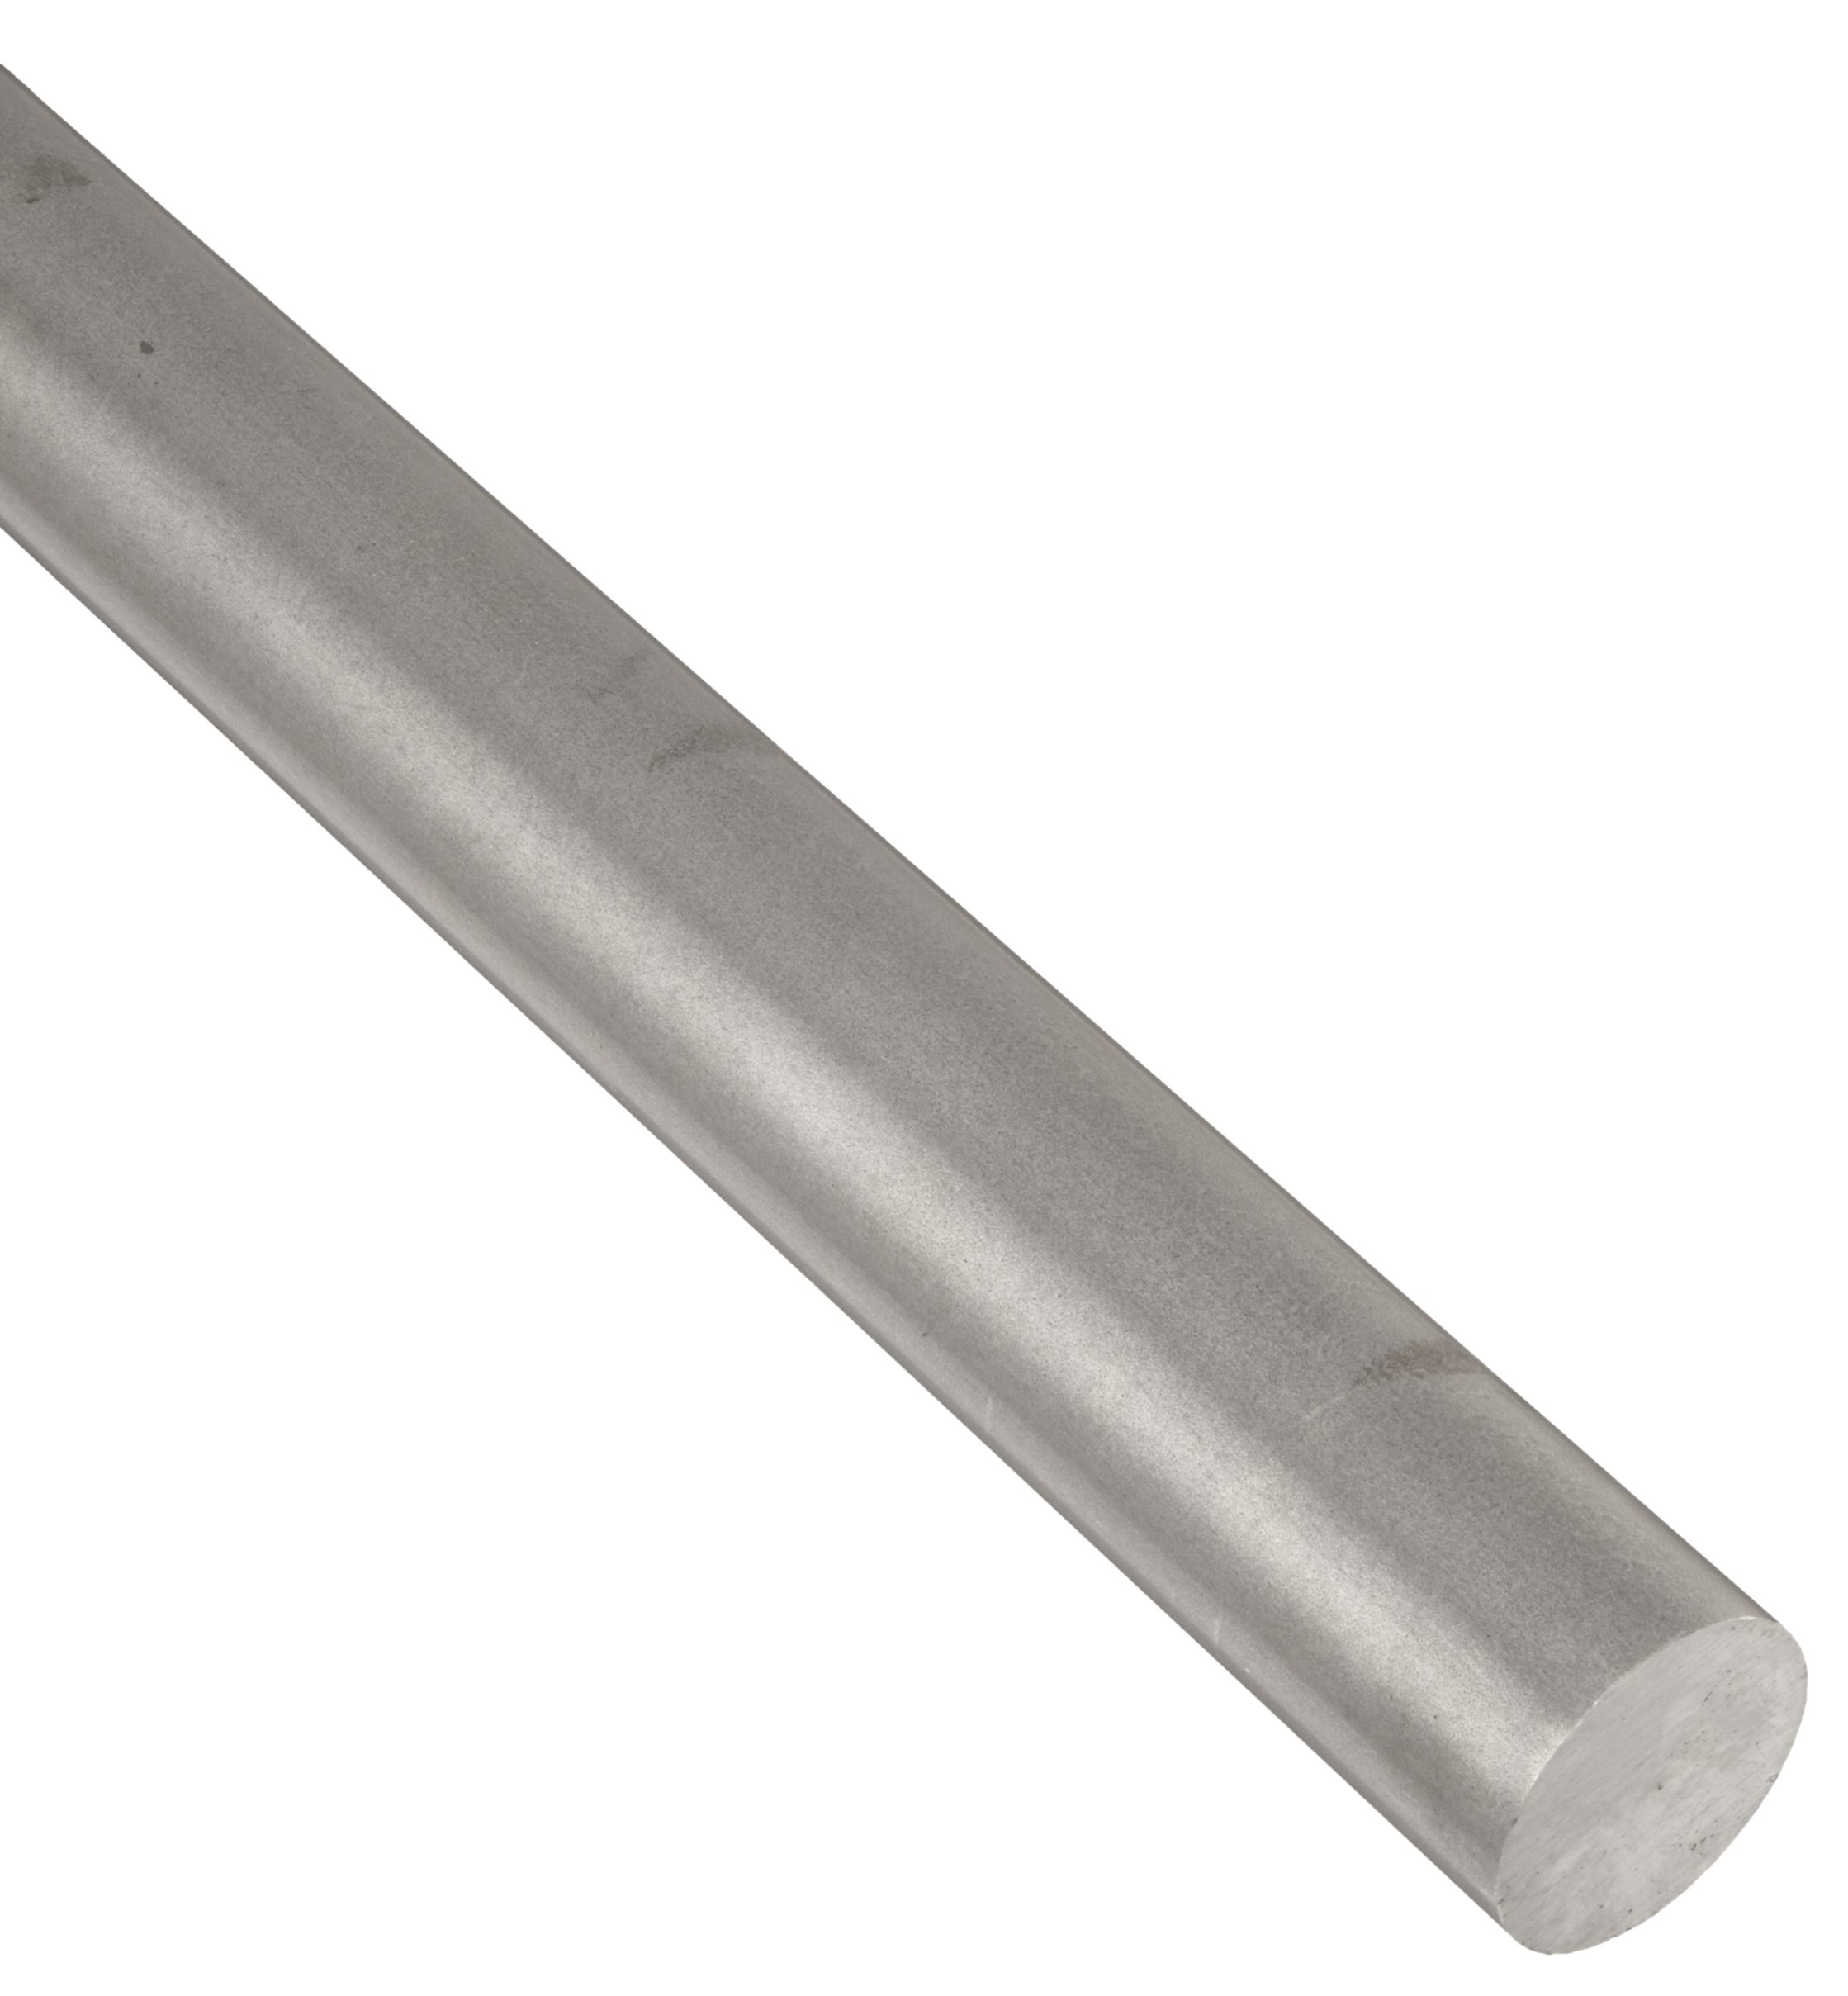 AMS 5640//ASTM A582//AMS QQ-S 764 Unpolished Finish 0.25 Diameter 24 Length Mill 303 Stainless Steel Round Rod